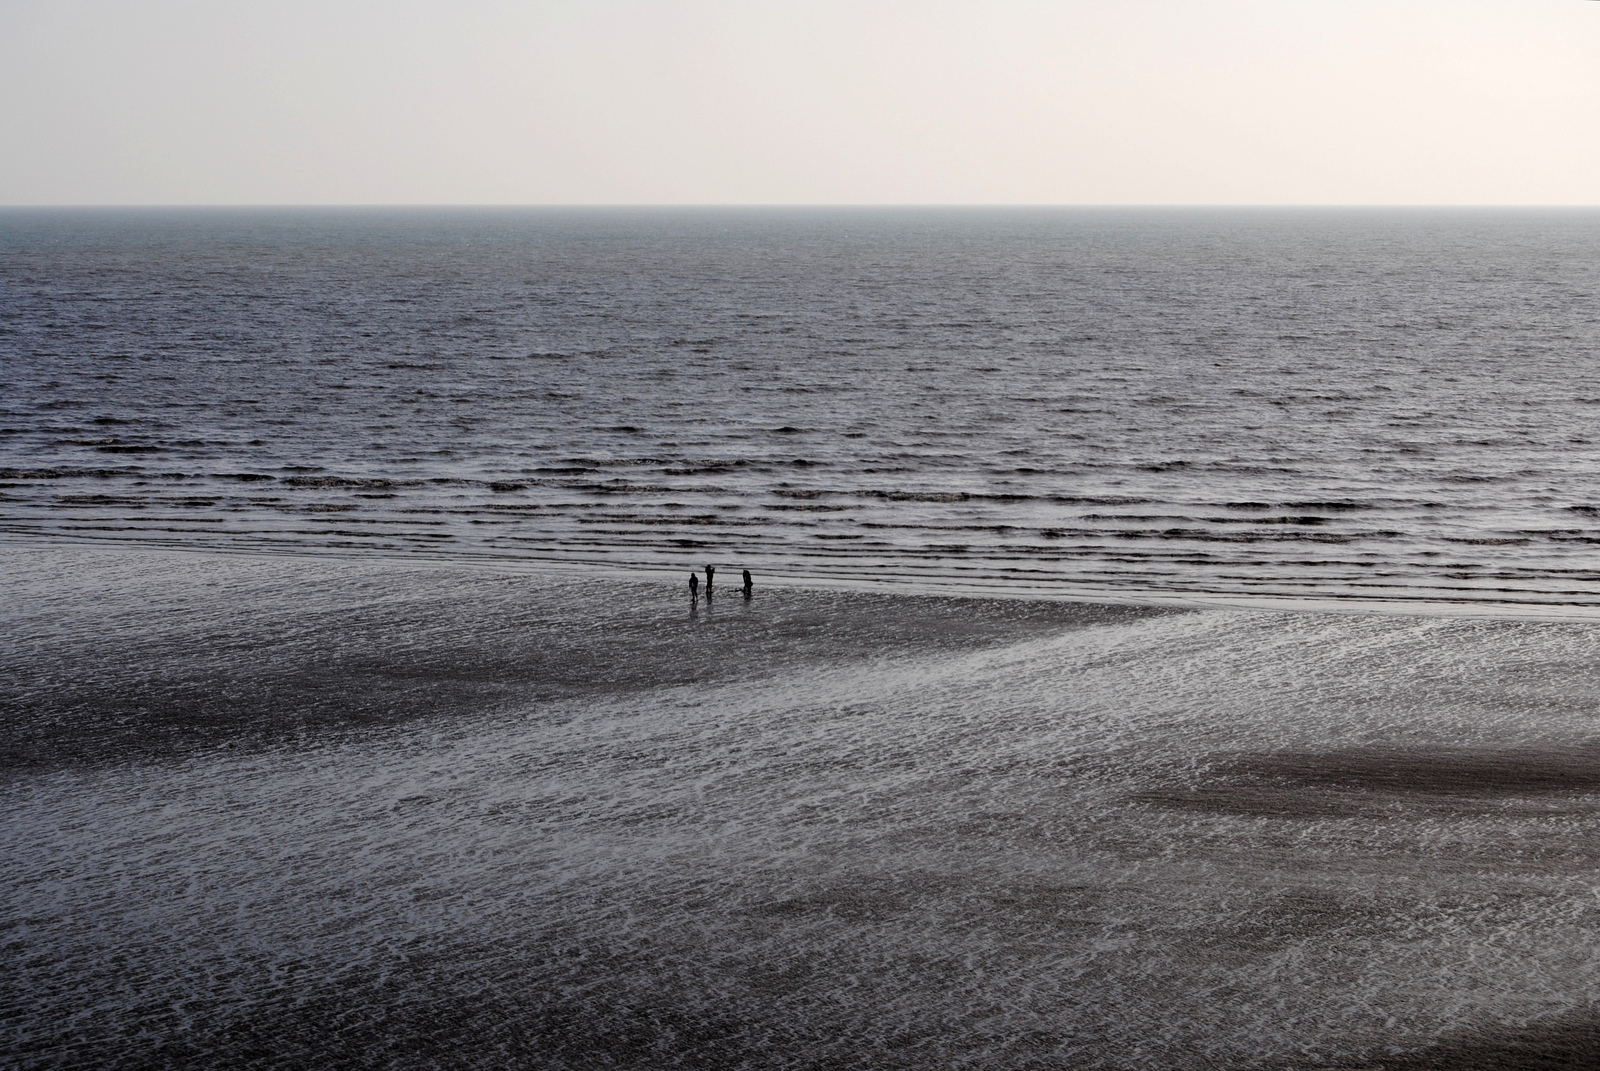 The view of the Sea from Pendine Sands